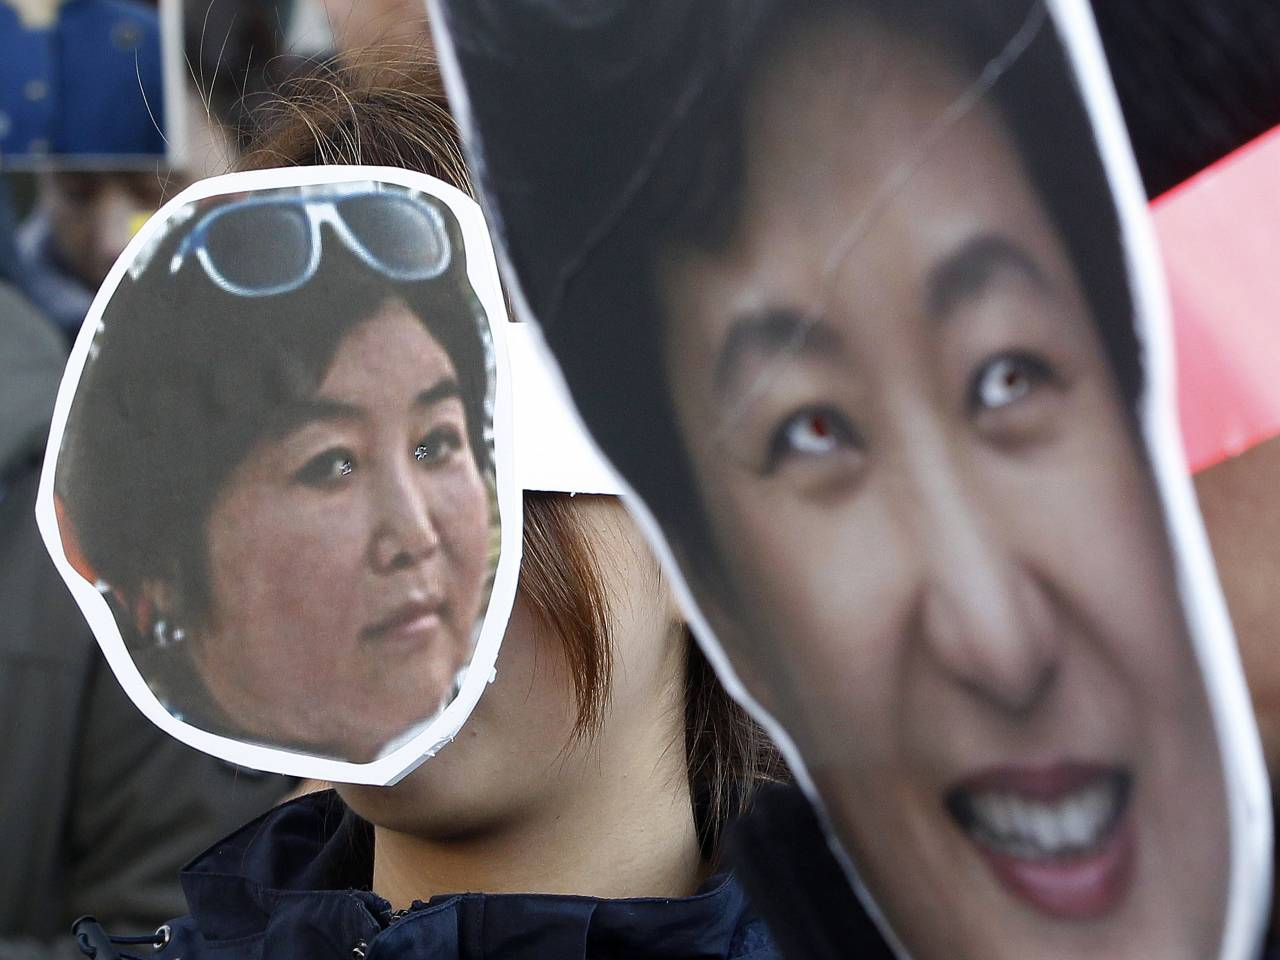 South Korea names new PM, finance minister amid scandal, angering opposition